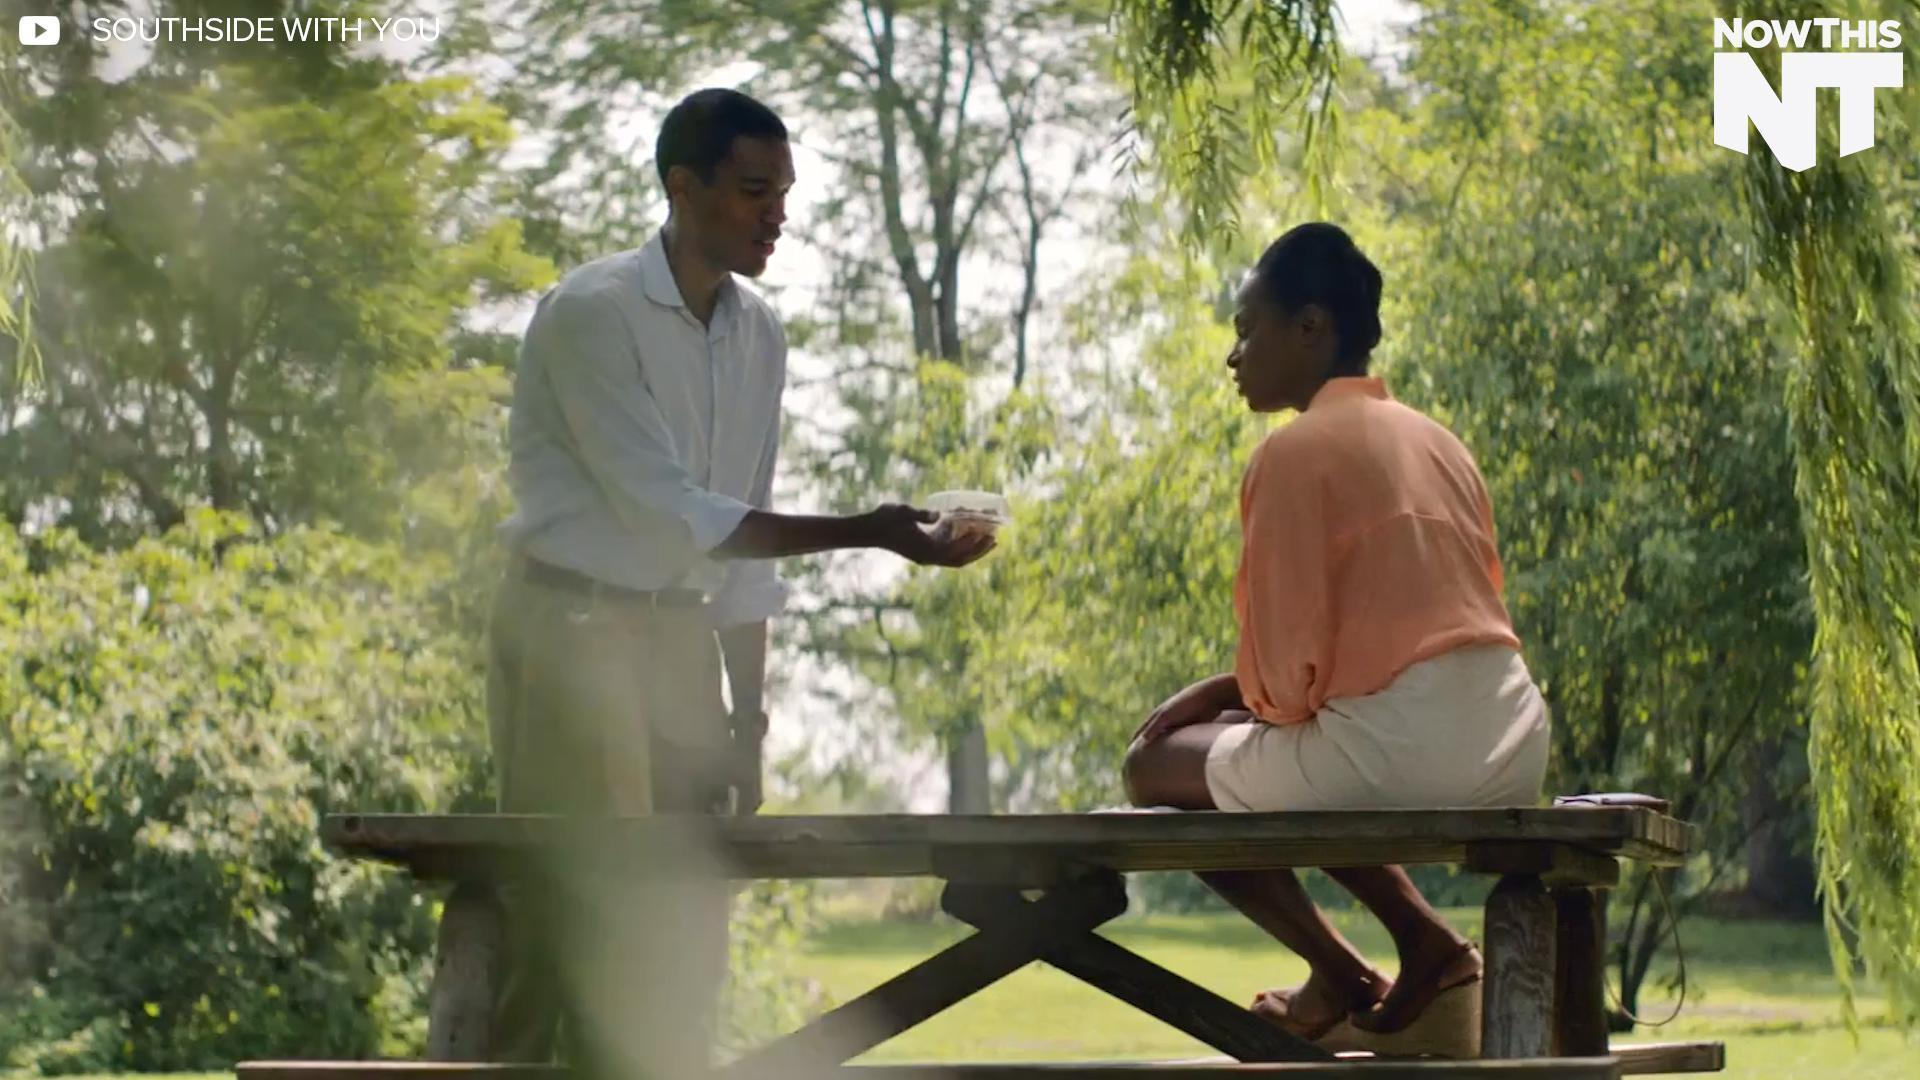 Barack And Michelle Obama's First Date Recreated In 'Southside With You'